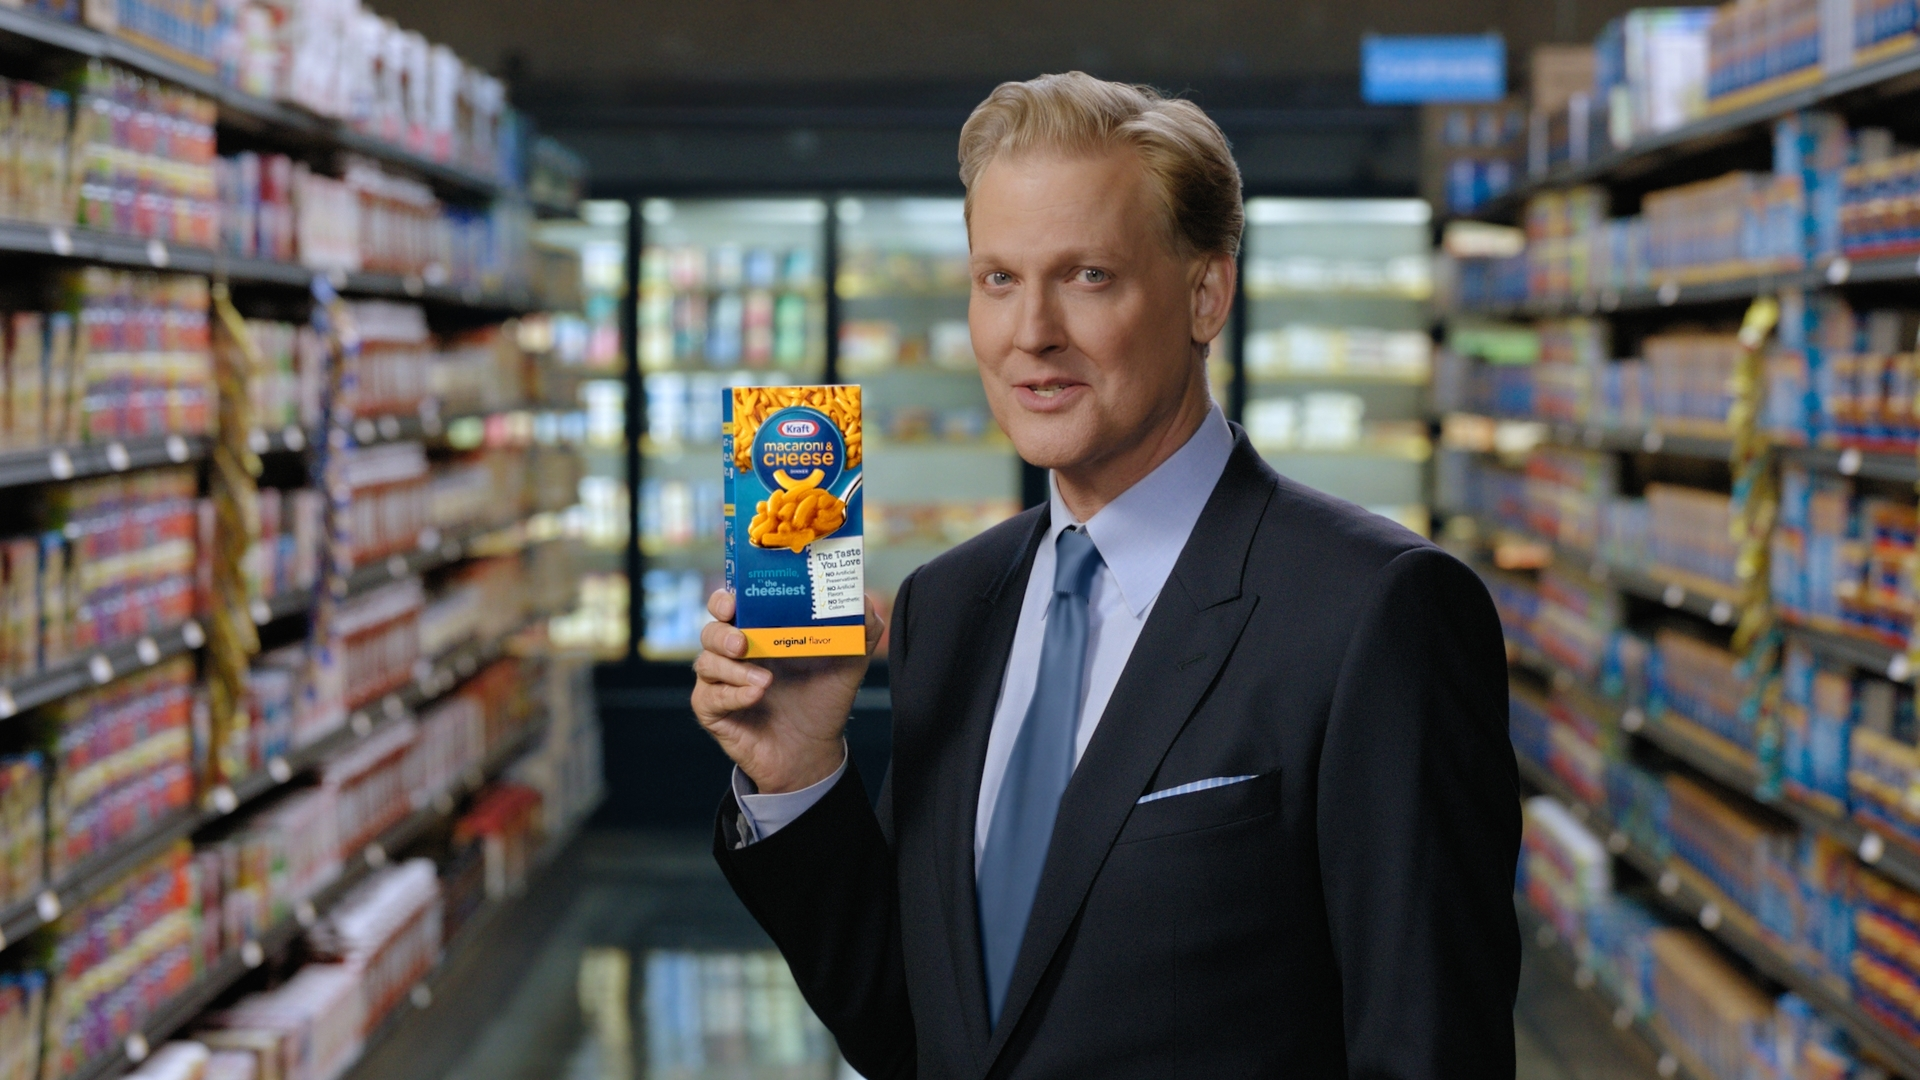 """Kraft Macaroni and Cheese """"It's Changed but it Hasn't"""" Still Image Featuring Craig Kilborn (Photo: Business Wire)"""